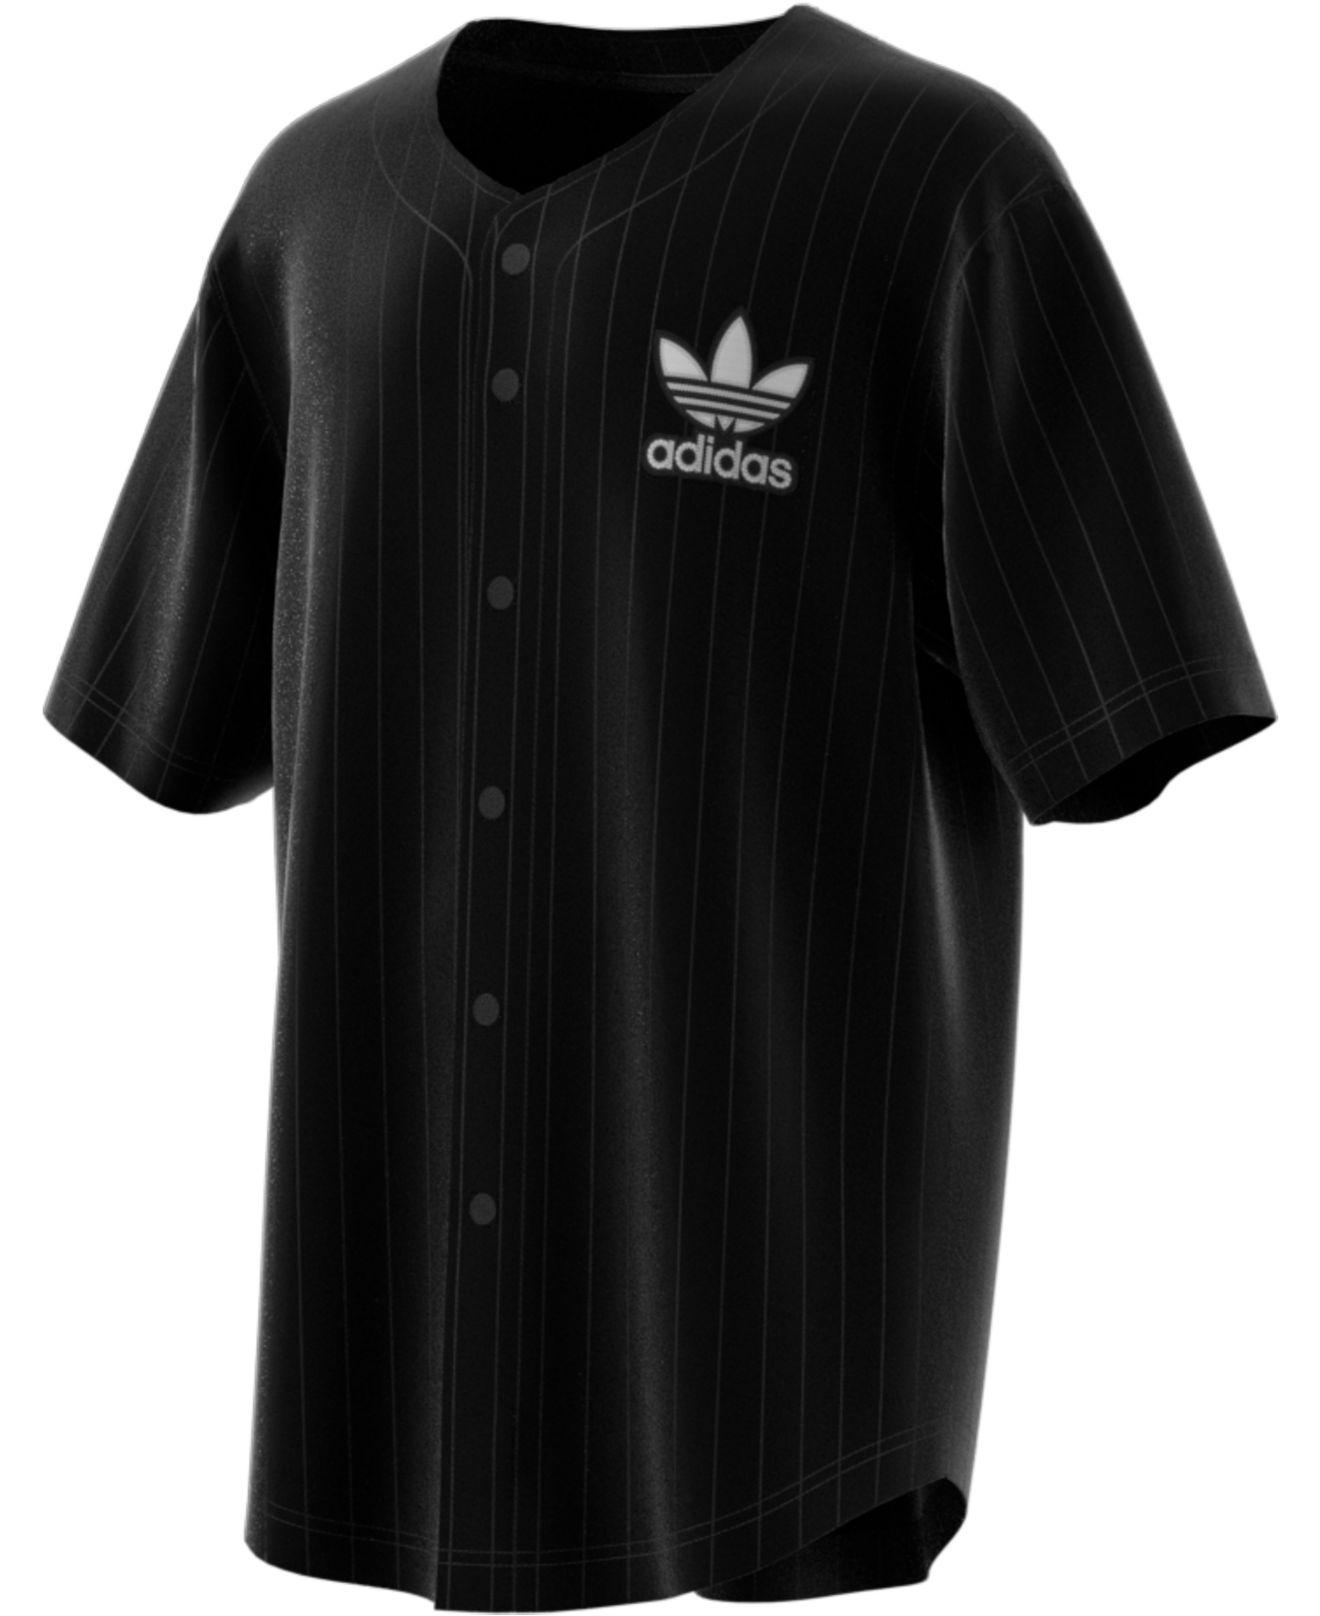 adidas Synthetic Jacquard Baseball Jersey in Black for Men - Lyst